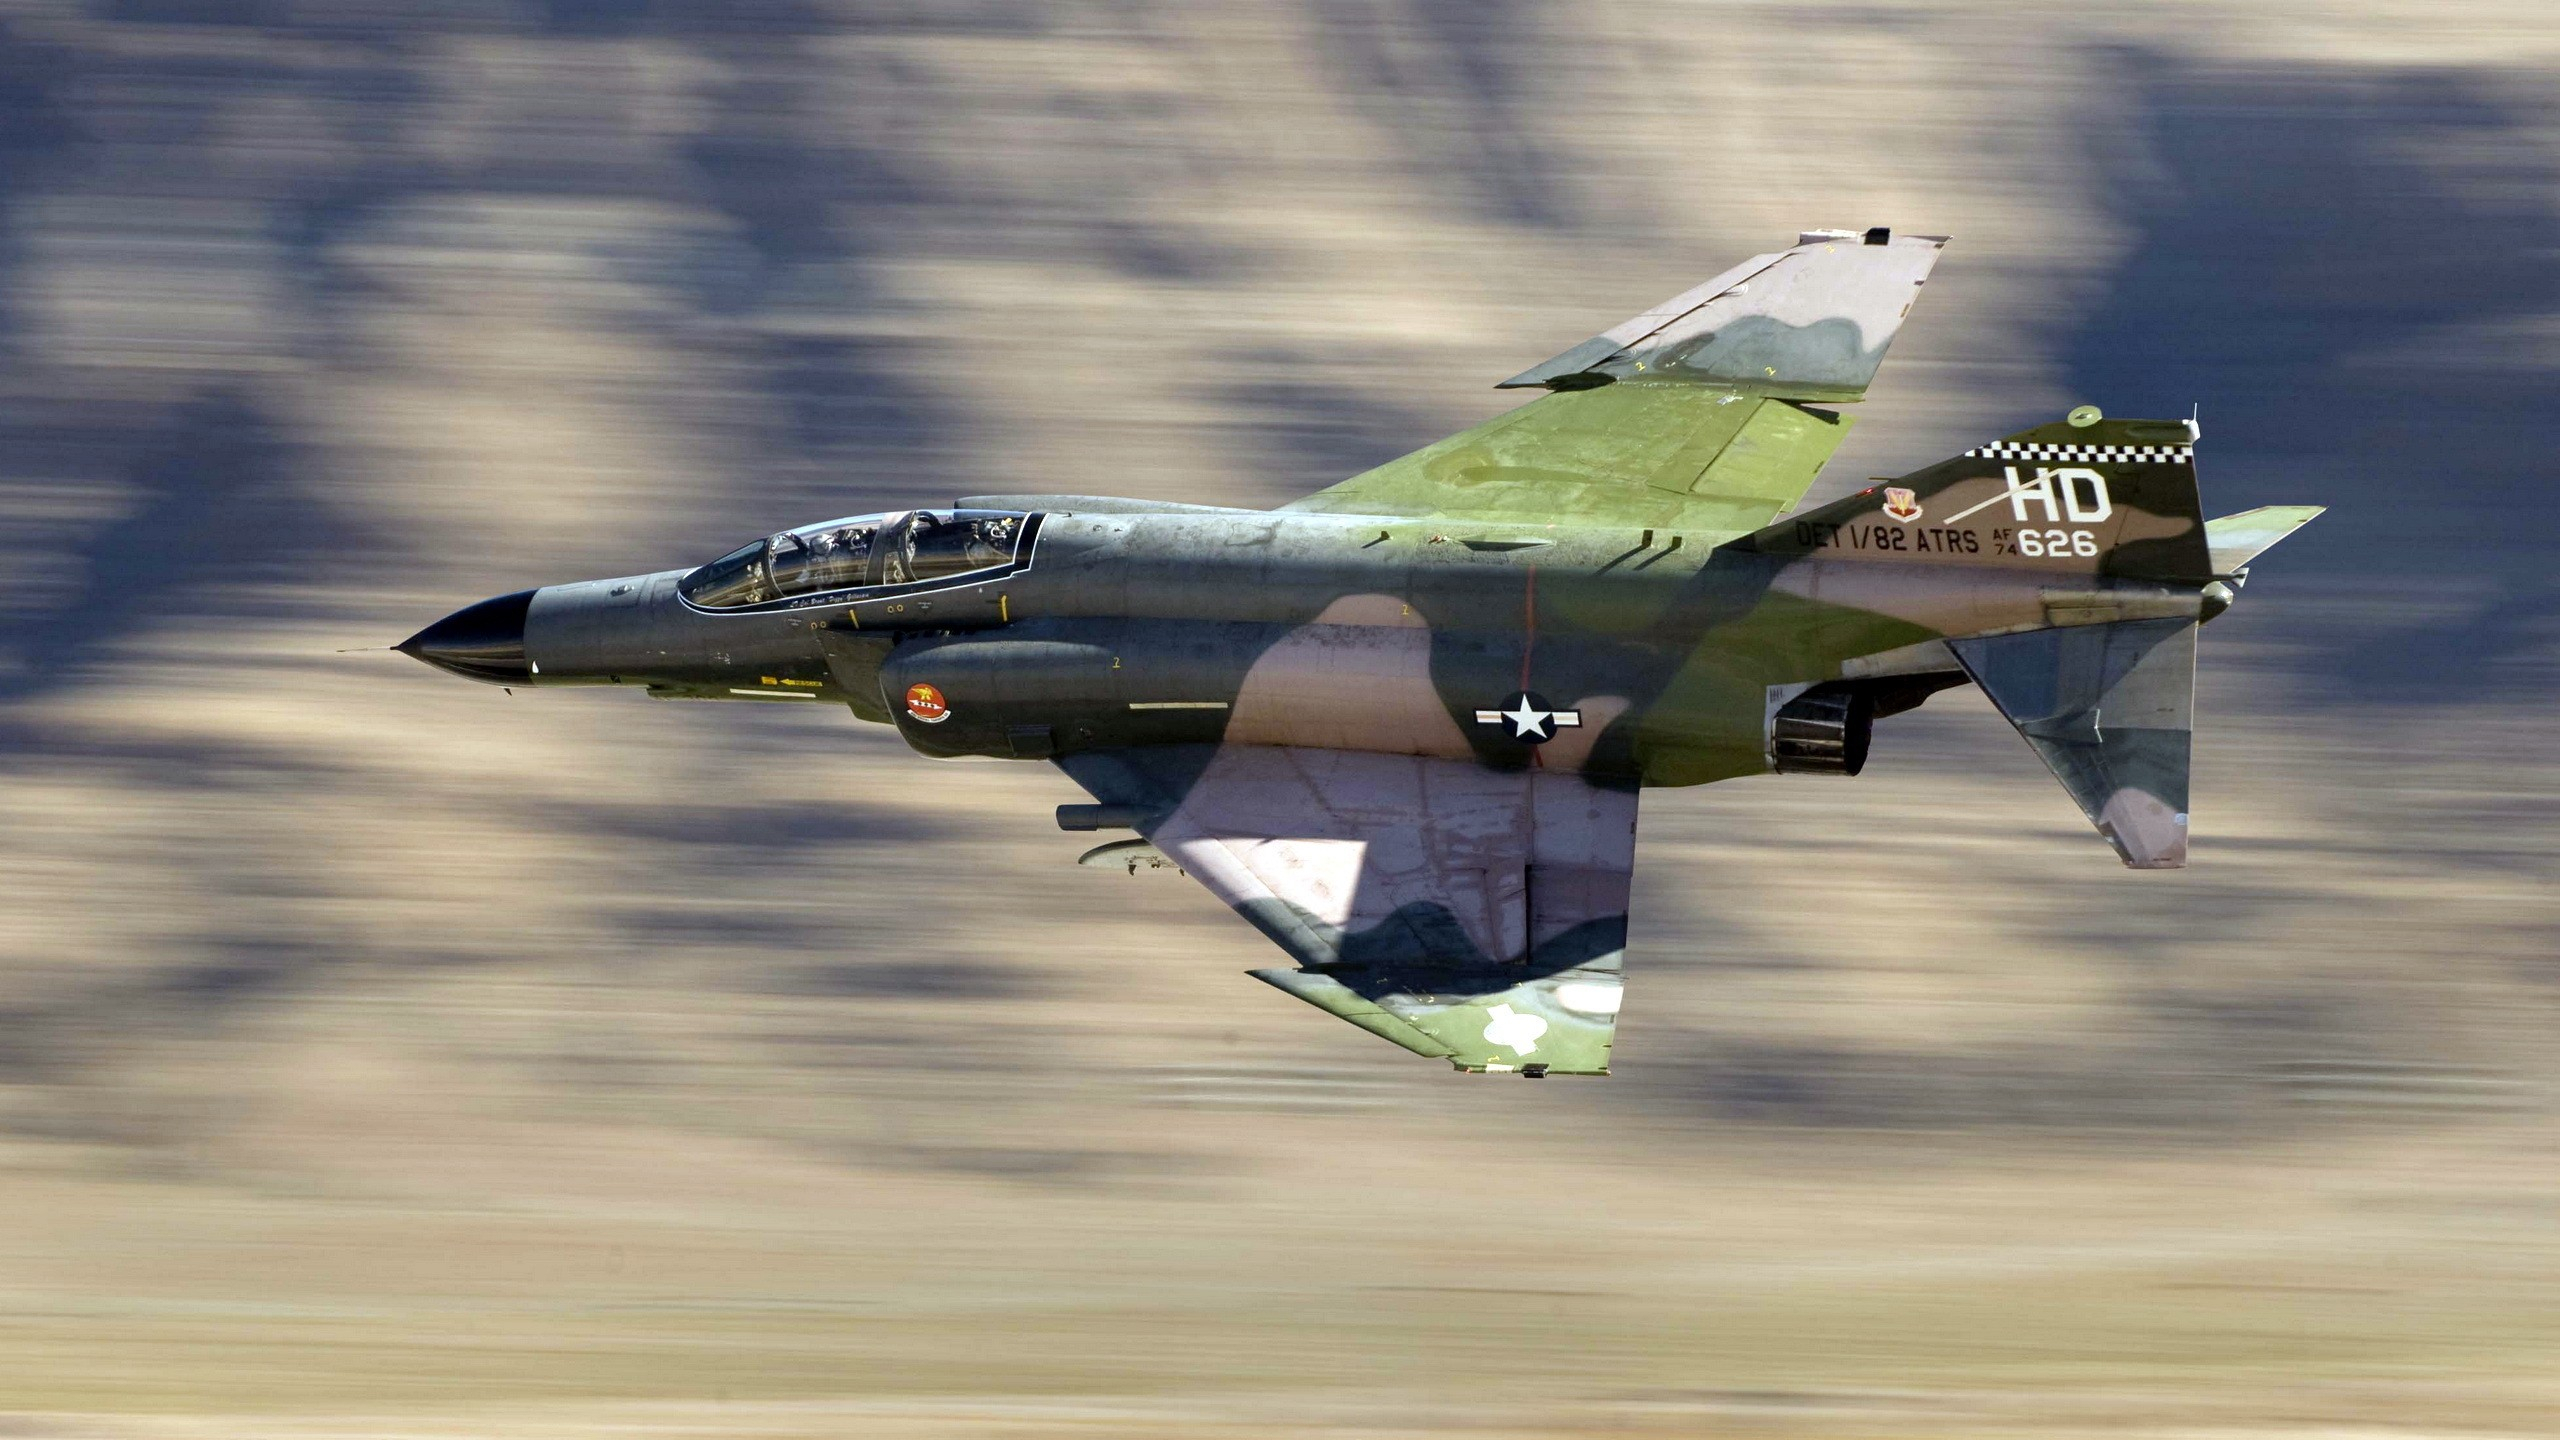 mcdonnell douglas f-4 phantom ii hd wallpaper | hintergrund